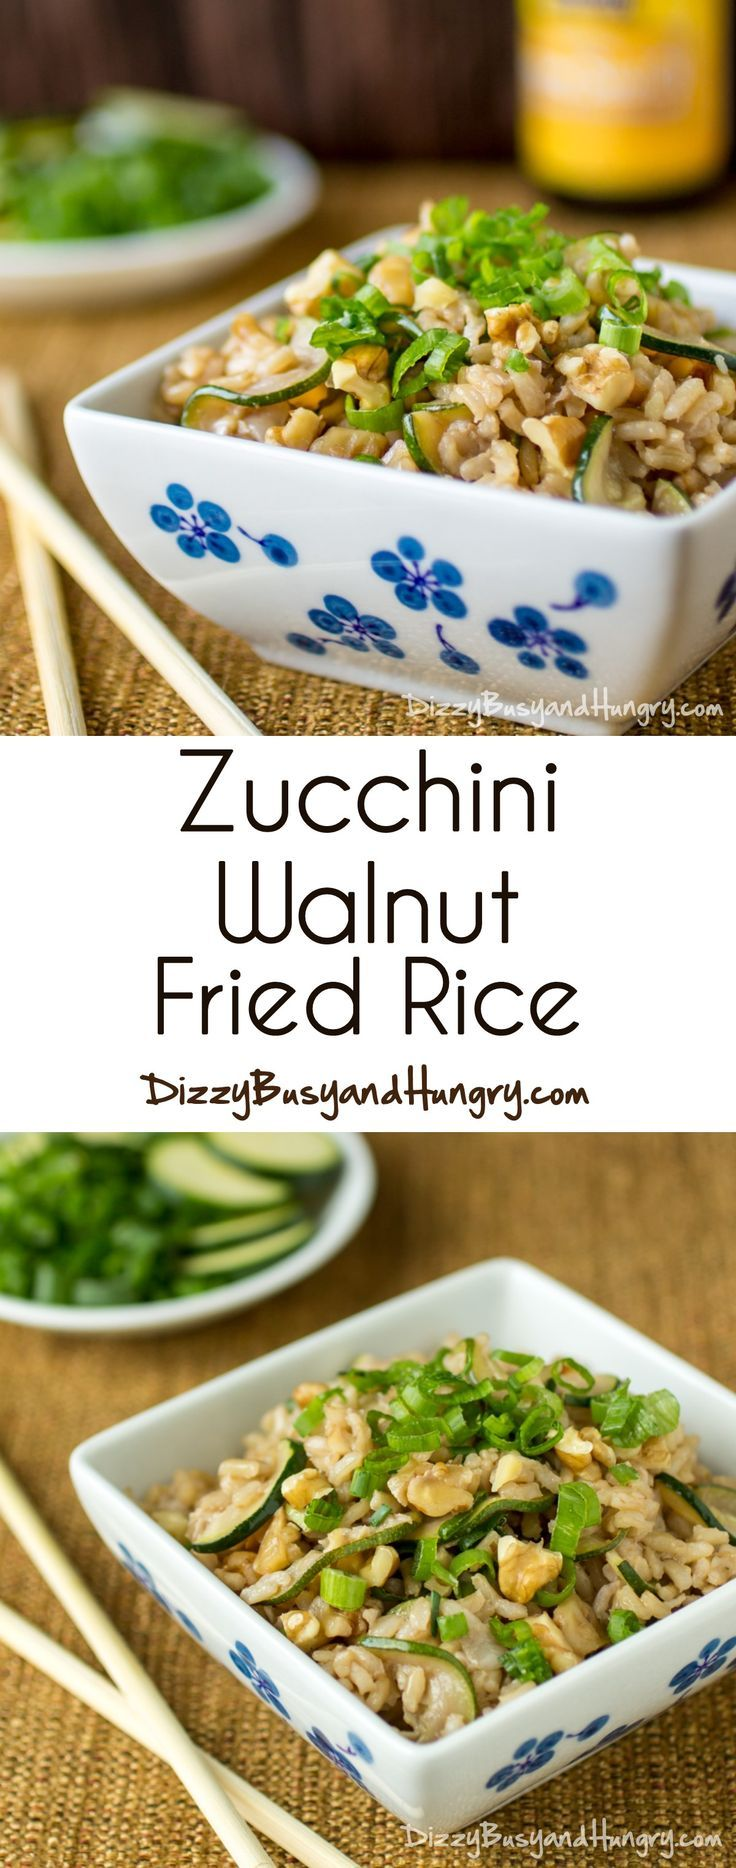 Zucchini Walnut Fried Rice | DizzyBusyandHungry.com - Skip the Chinese takeout - this healthy and tasty fried rice is so easy to make!